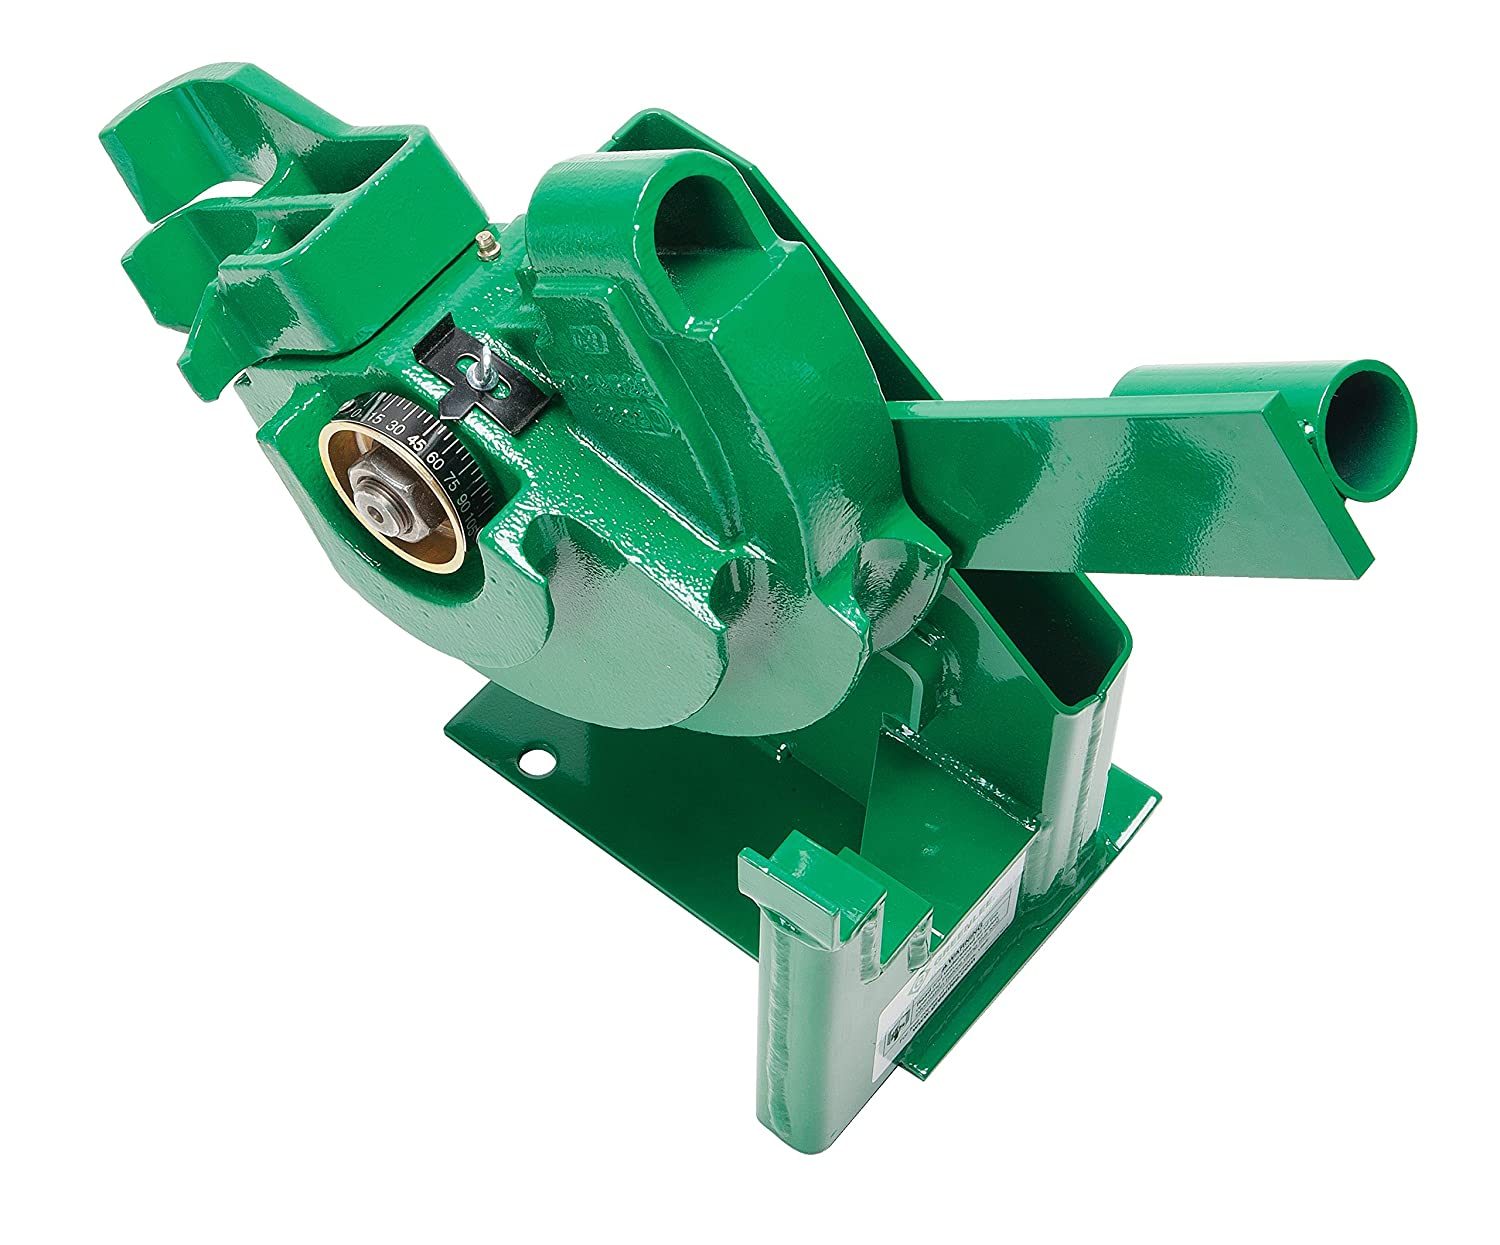 Greenlee 1800 Mechanical Bender for 1/2, 3/4, and 1-Inch IMC and Rigid  Conduit with Undercarriage - Rebar Cutters And Benders - Amazon.com